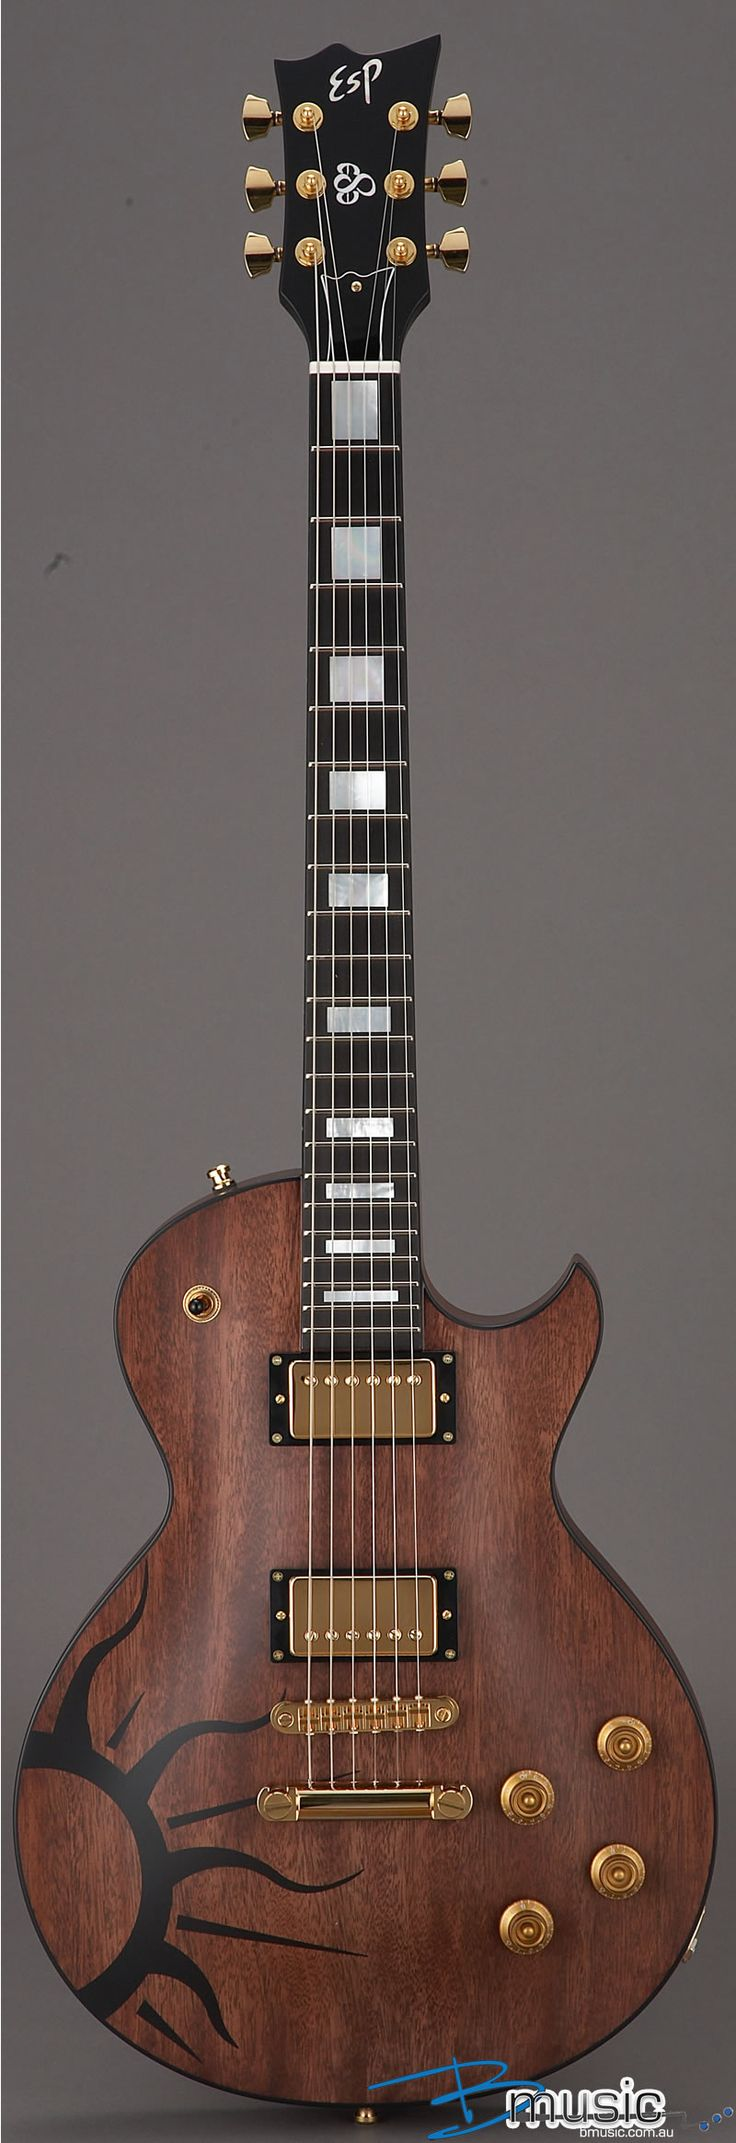 I'm really not into ESP guitars, but ESP Eclipse Esa Holopainen Signature is damn sweet guitar.